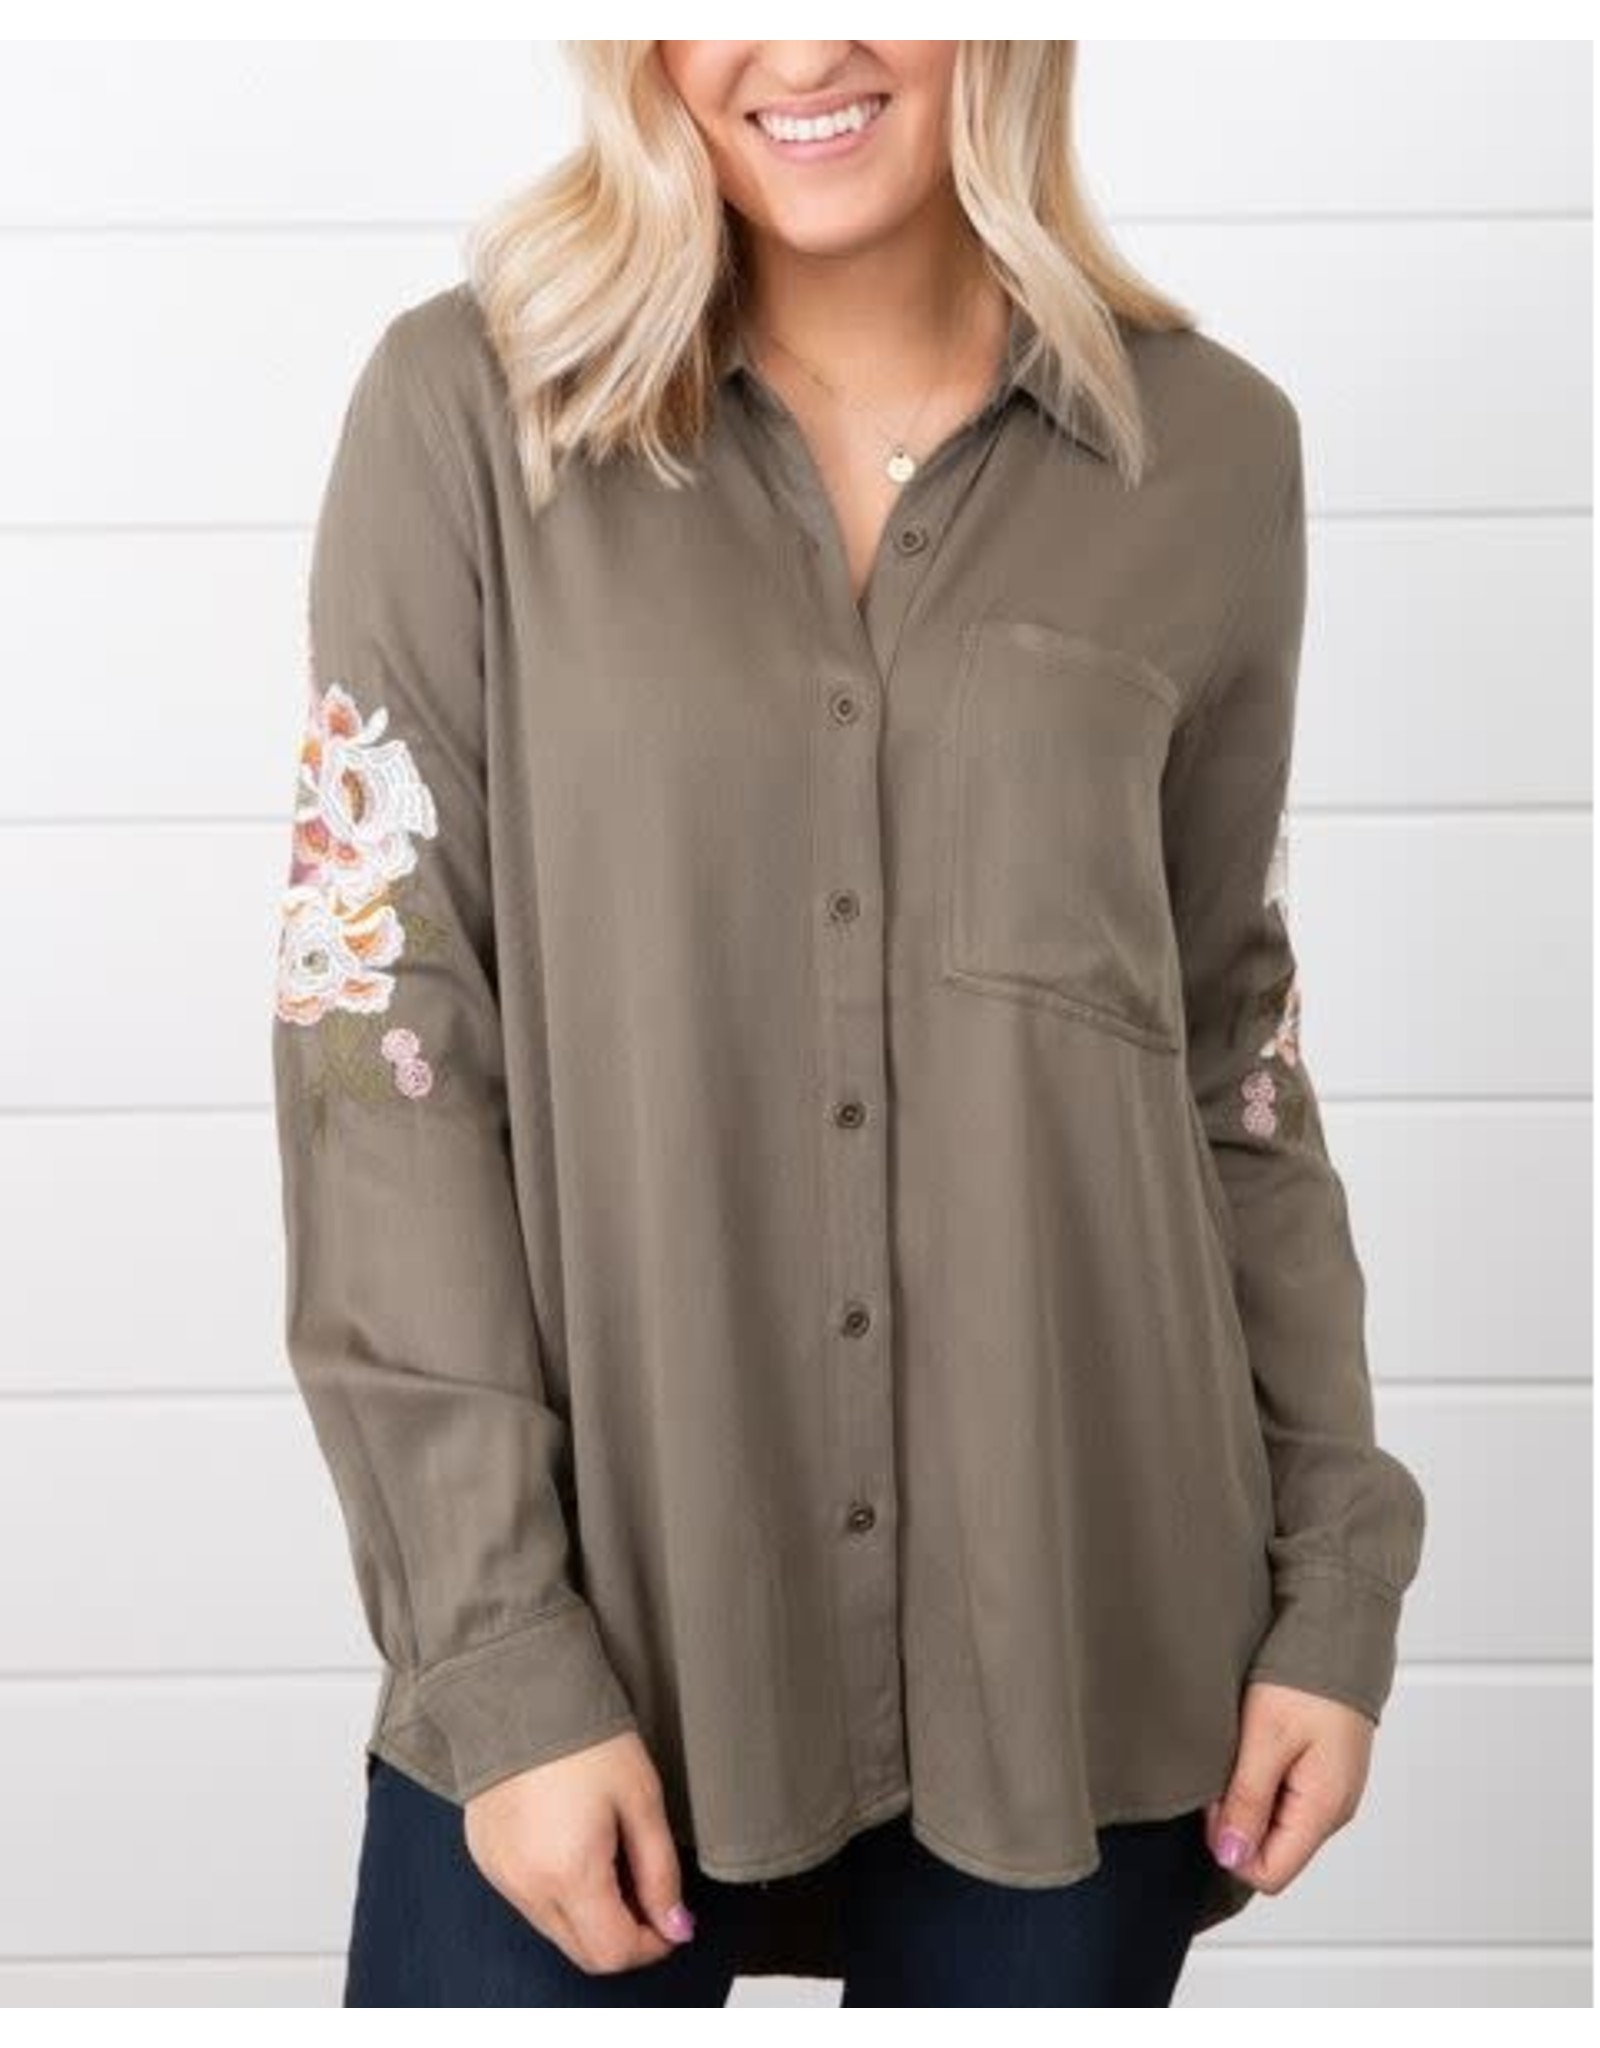 OLIVE BUTTON DOWN SHIRT WITH EMBROIDERED SLEEVE